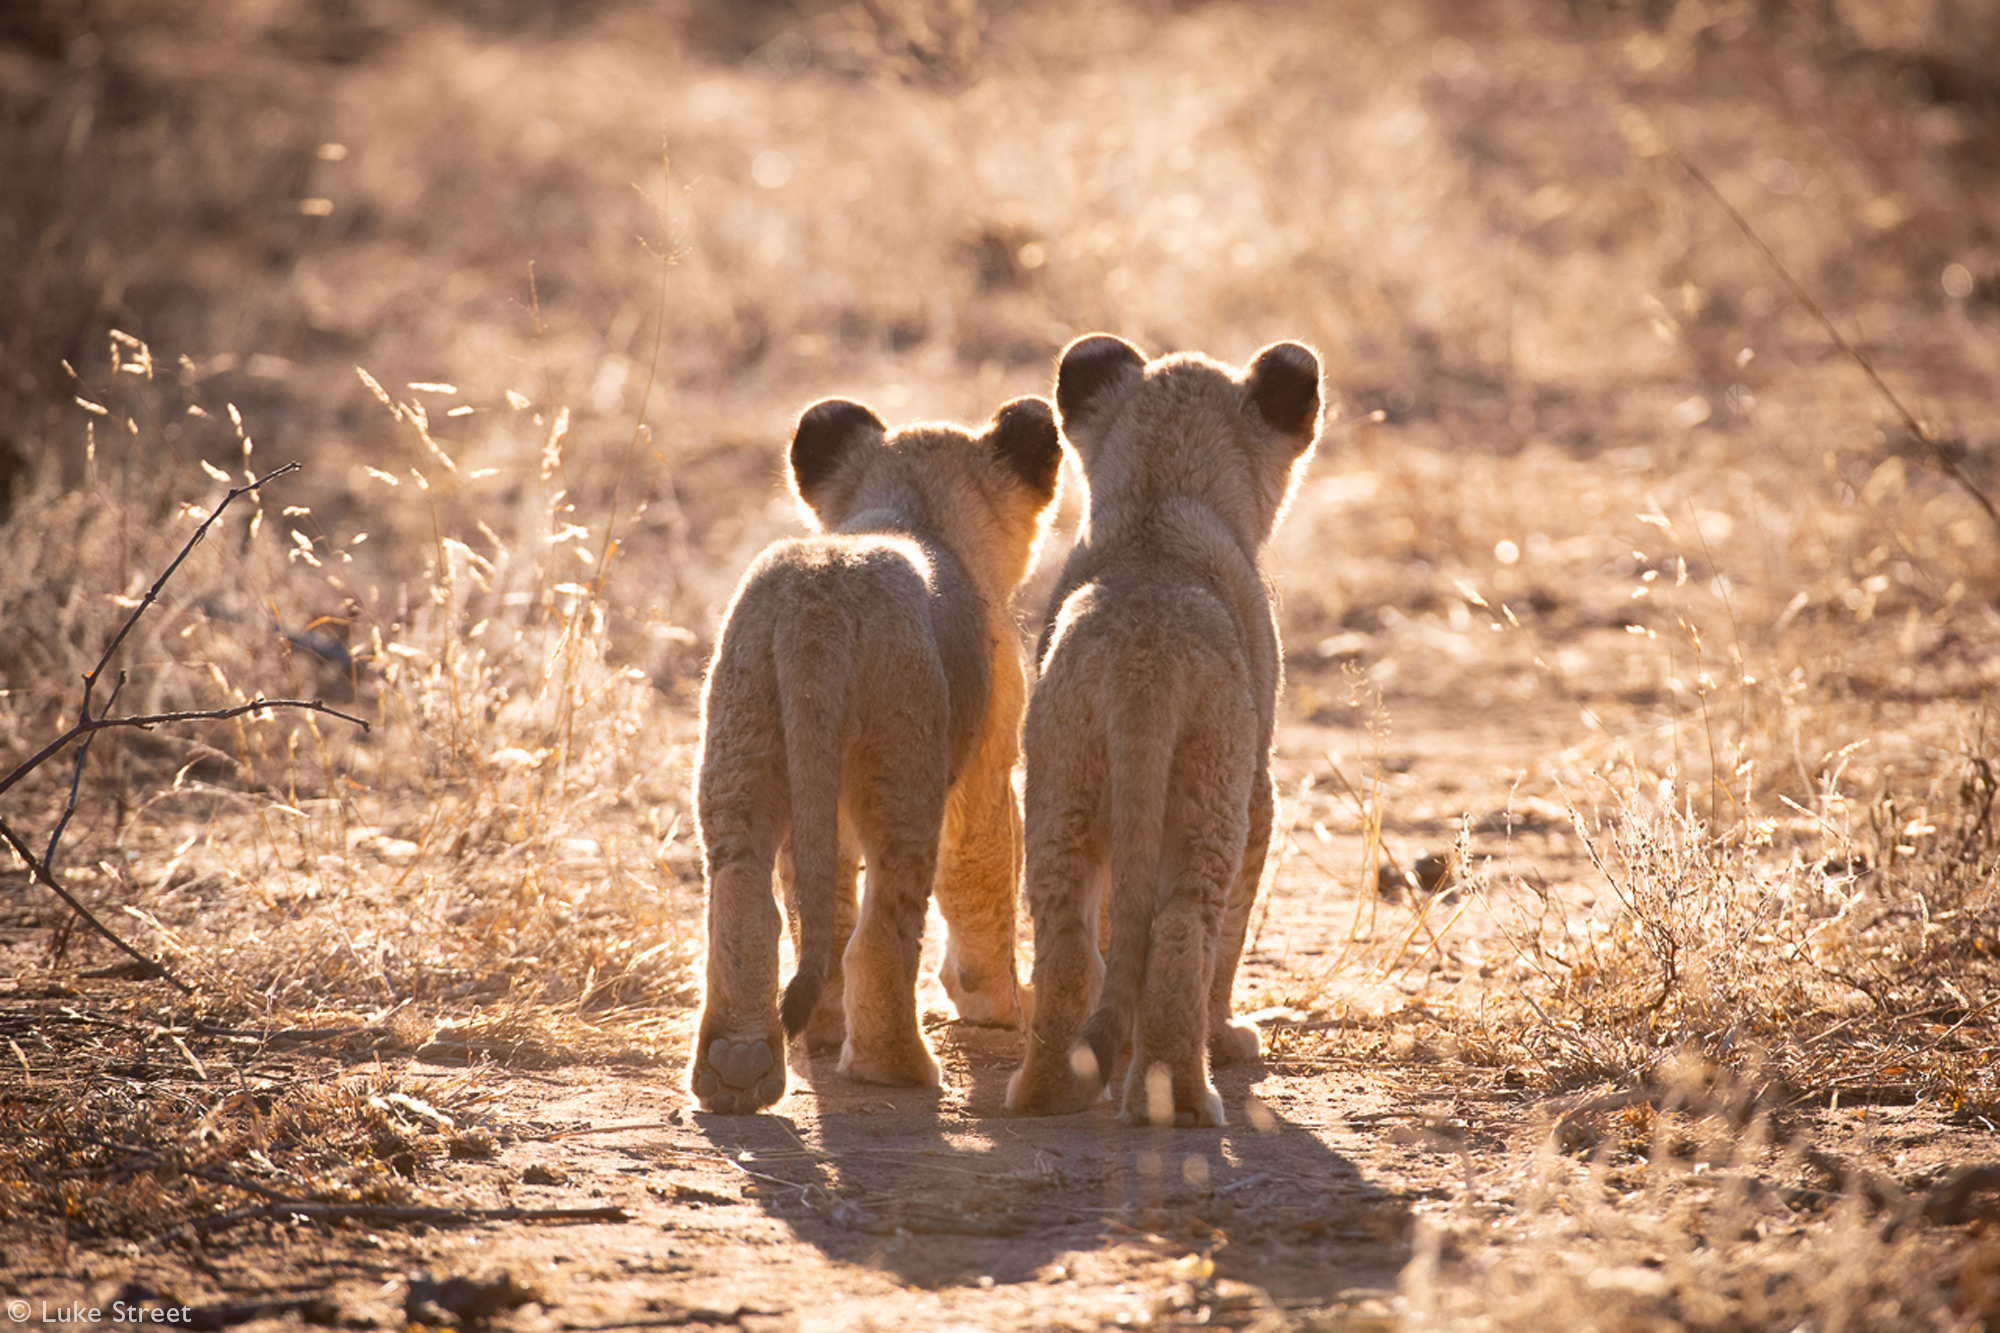 Two lion cubs walking down a sandy road